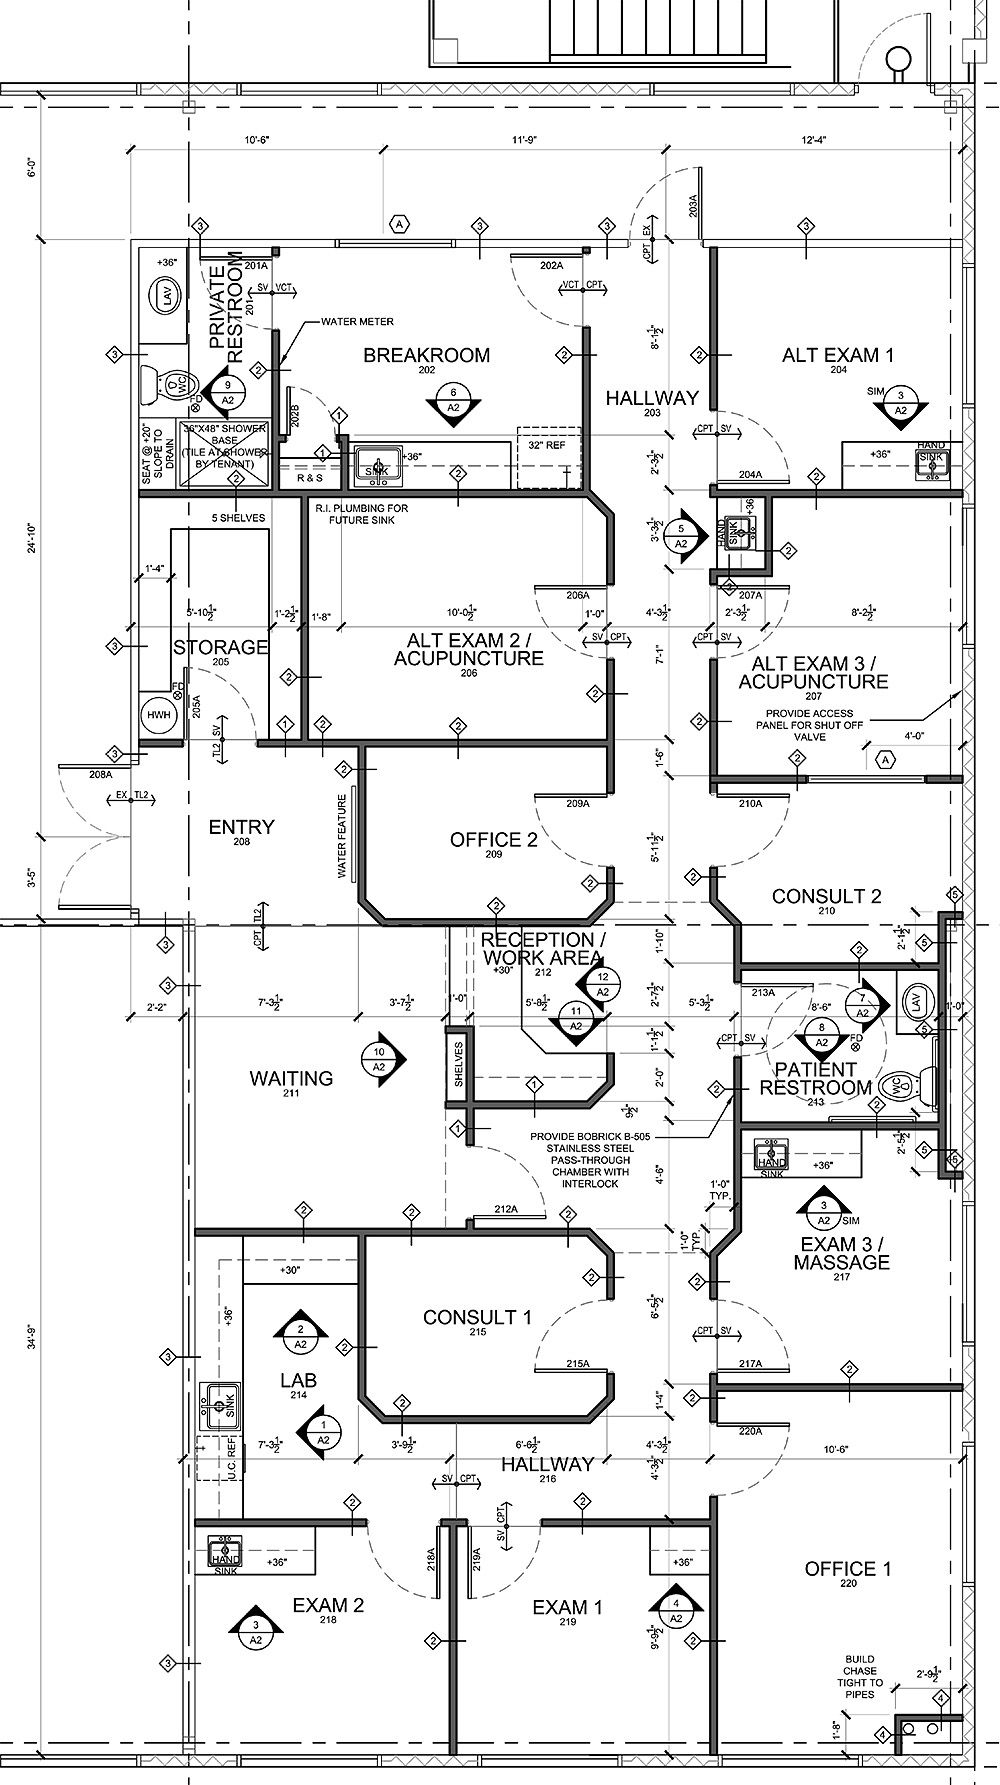 Medical Office Design Plans Advice For Medical Office Floor Plan Design In Tenant Buildings